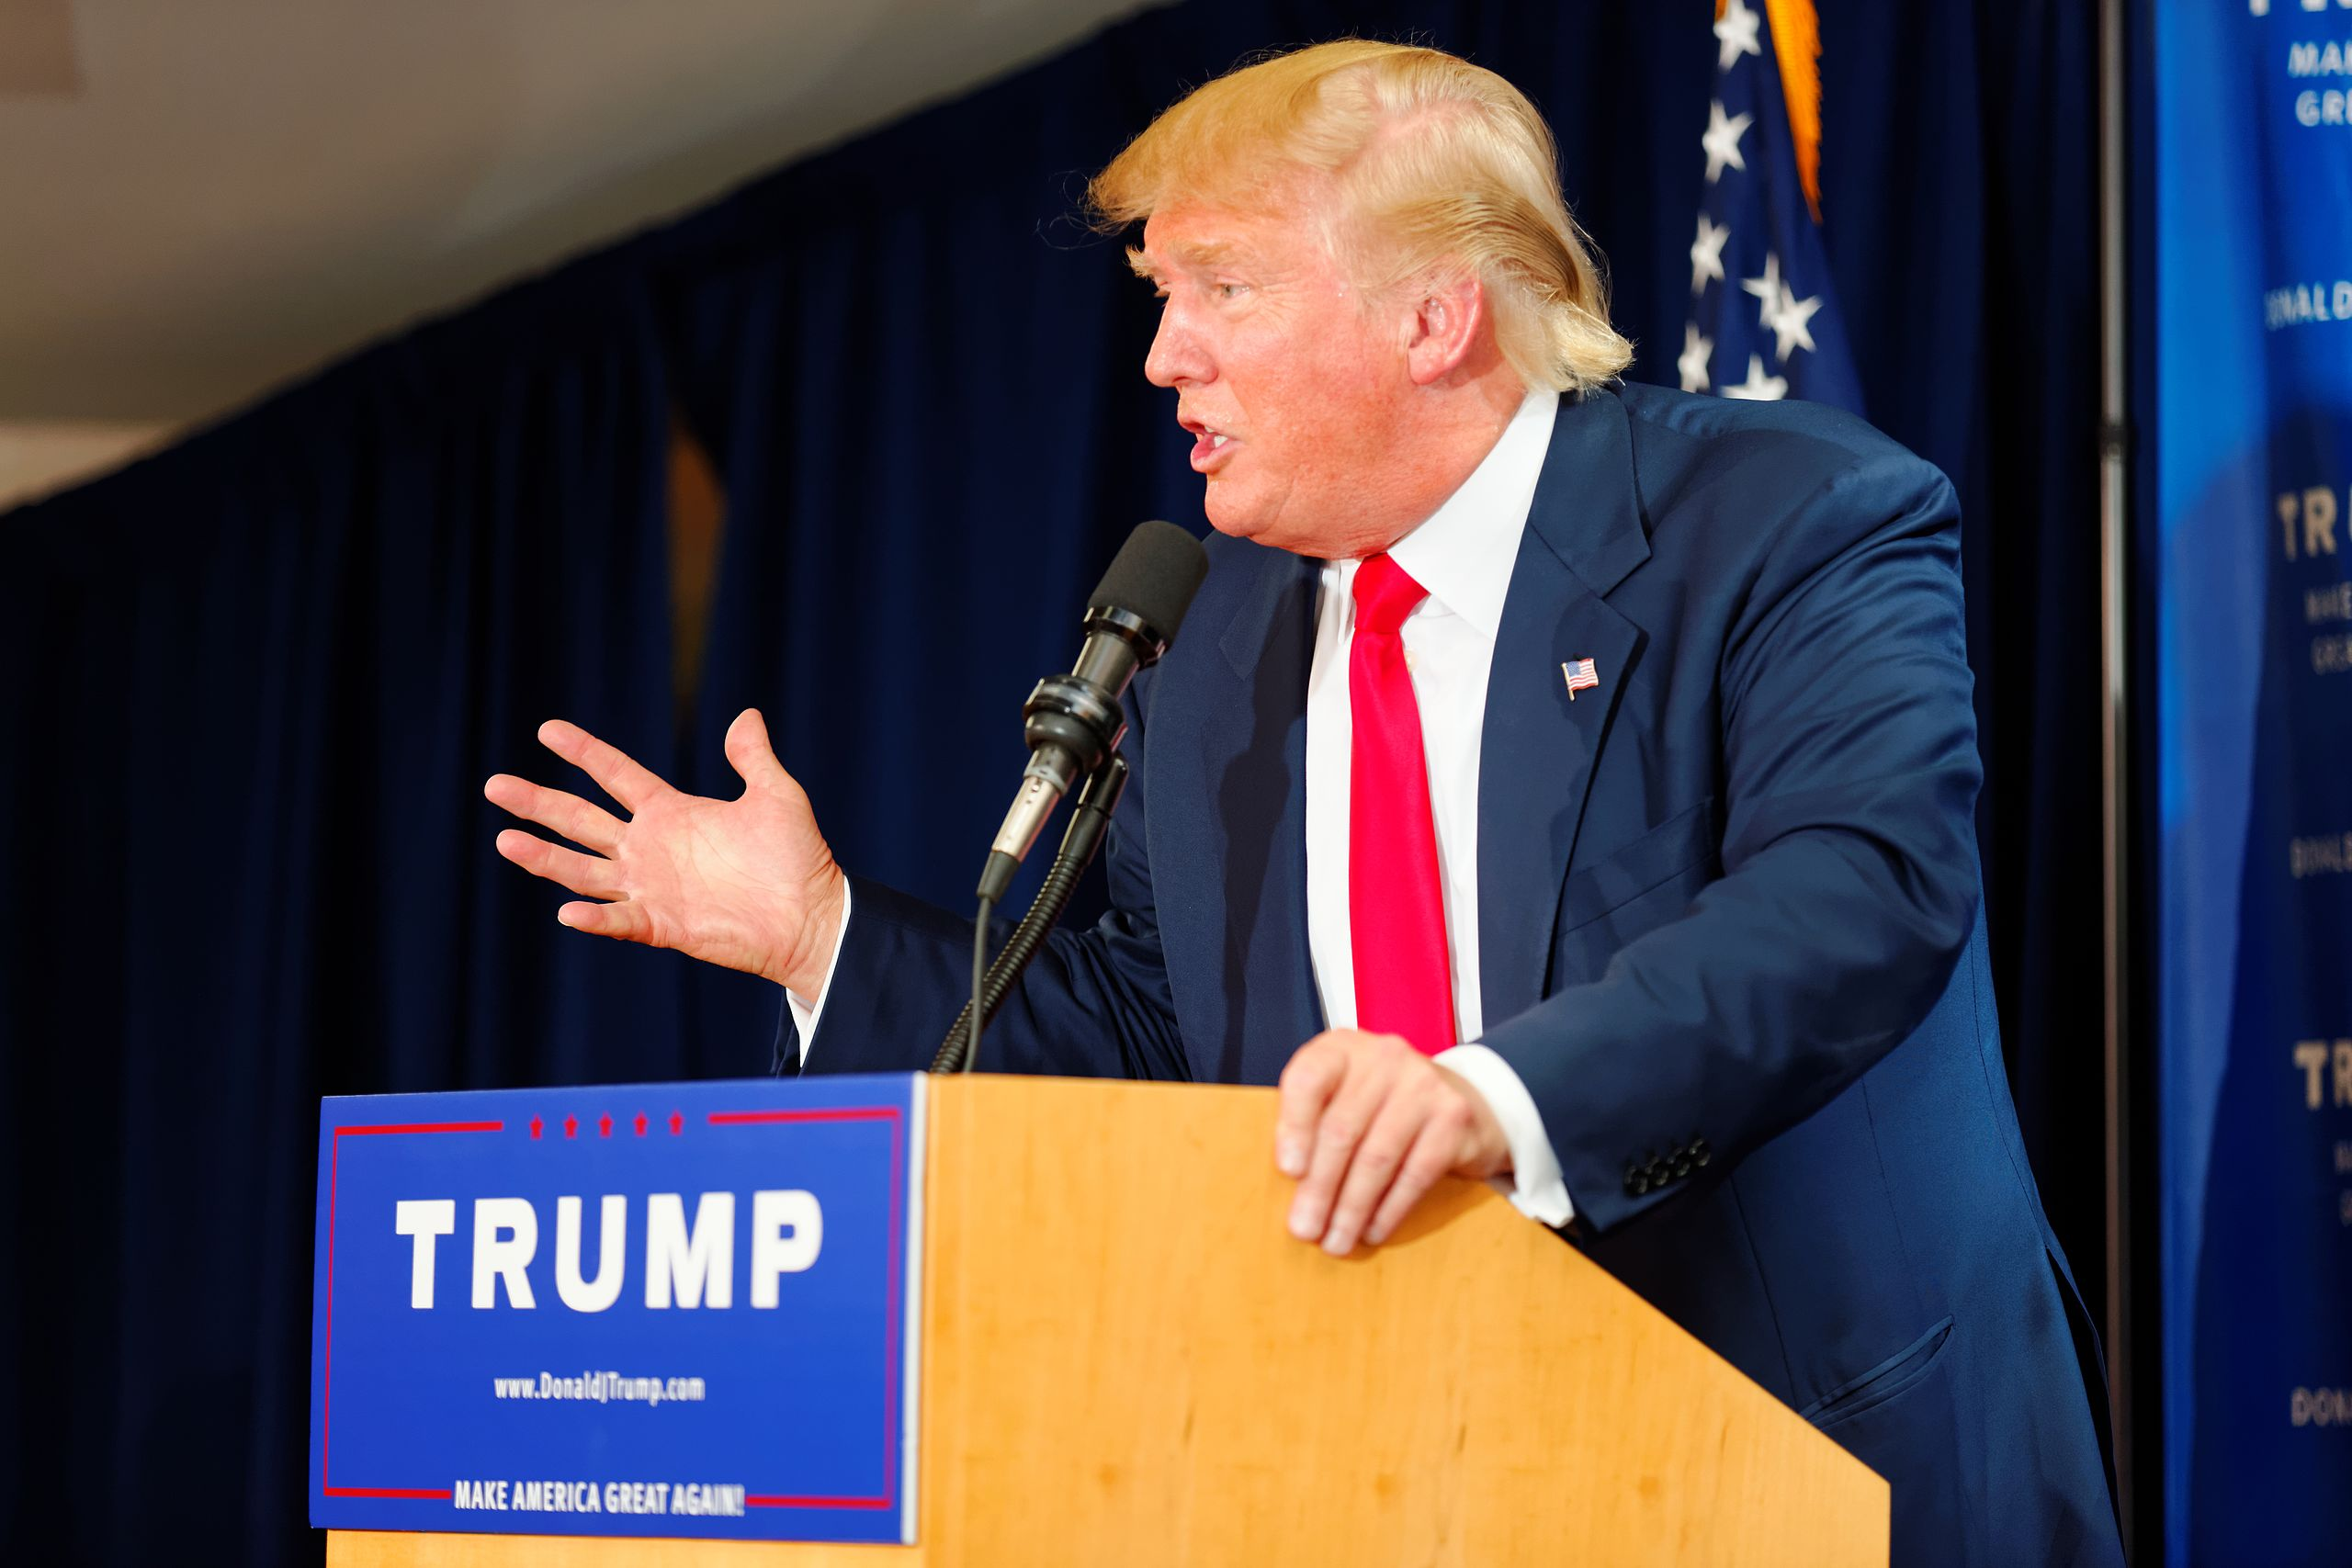 Donald_Trump_Laconia_Rally__Laconia__NH_4_by_Michael_Vadon_July_16_2015_19.jpg